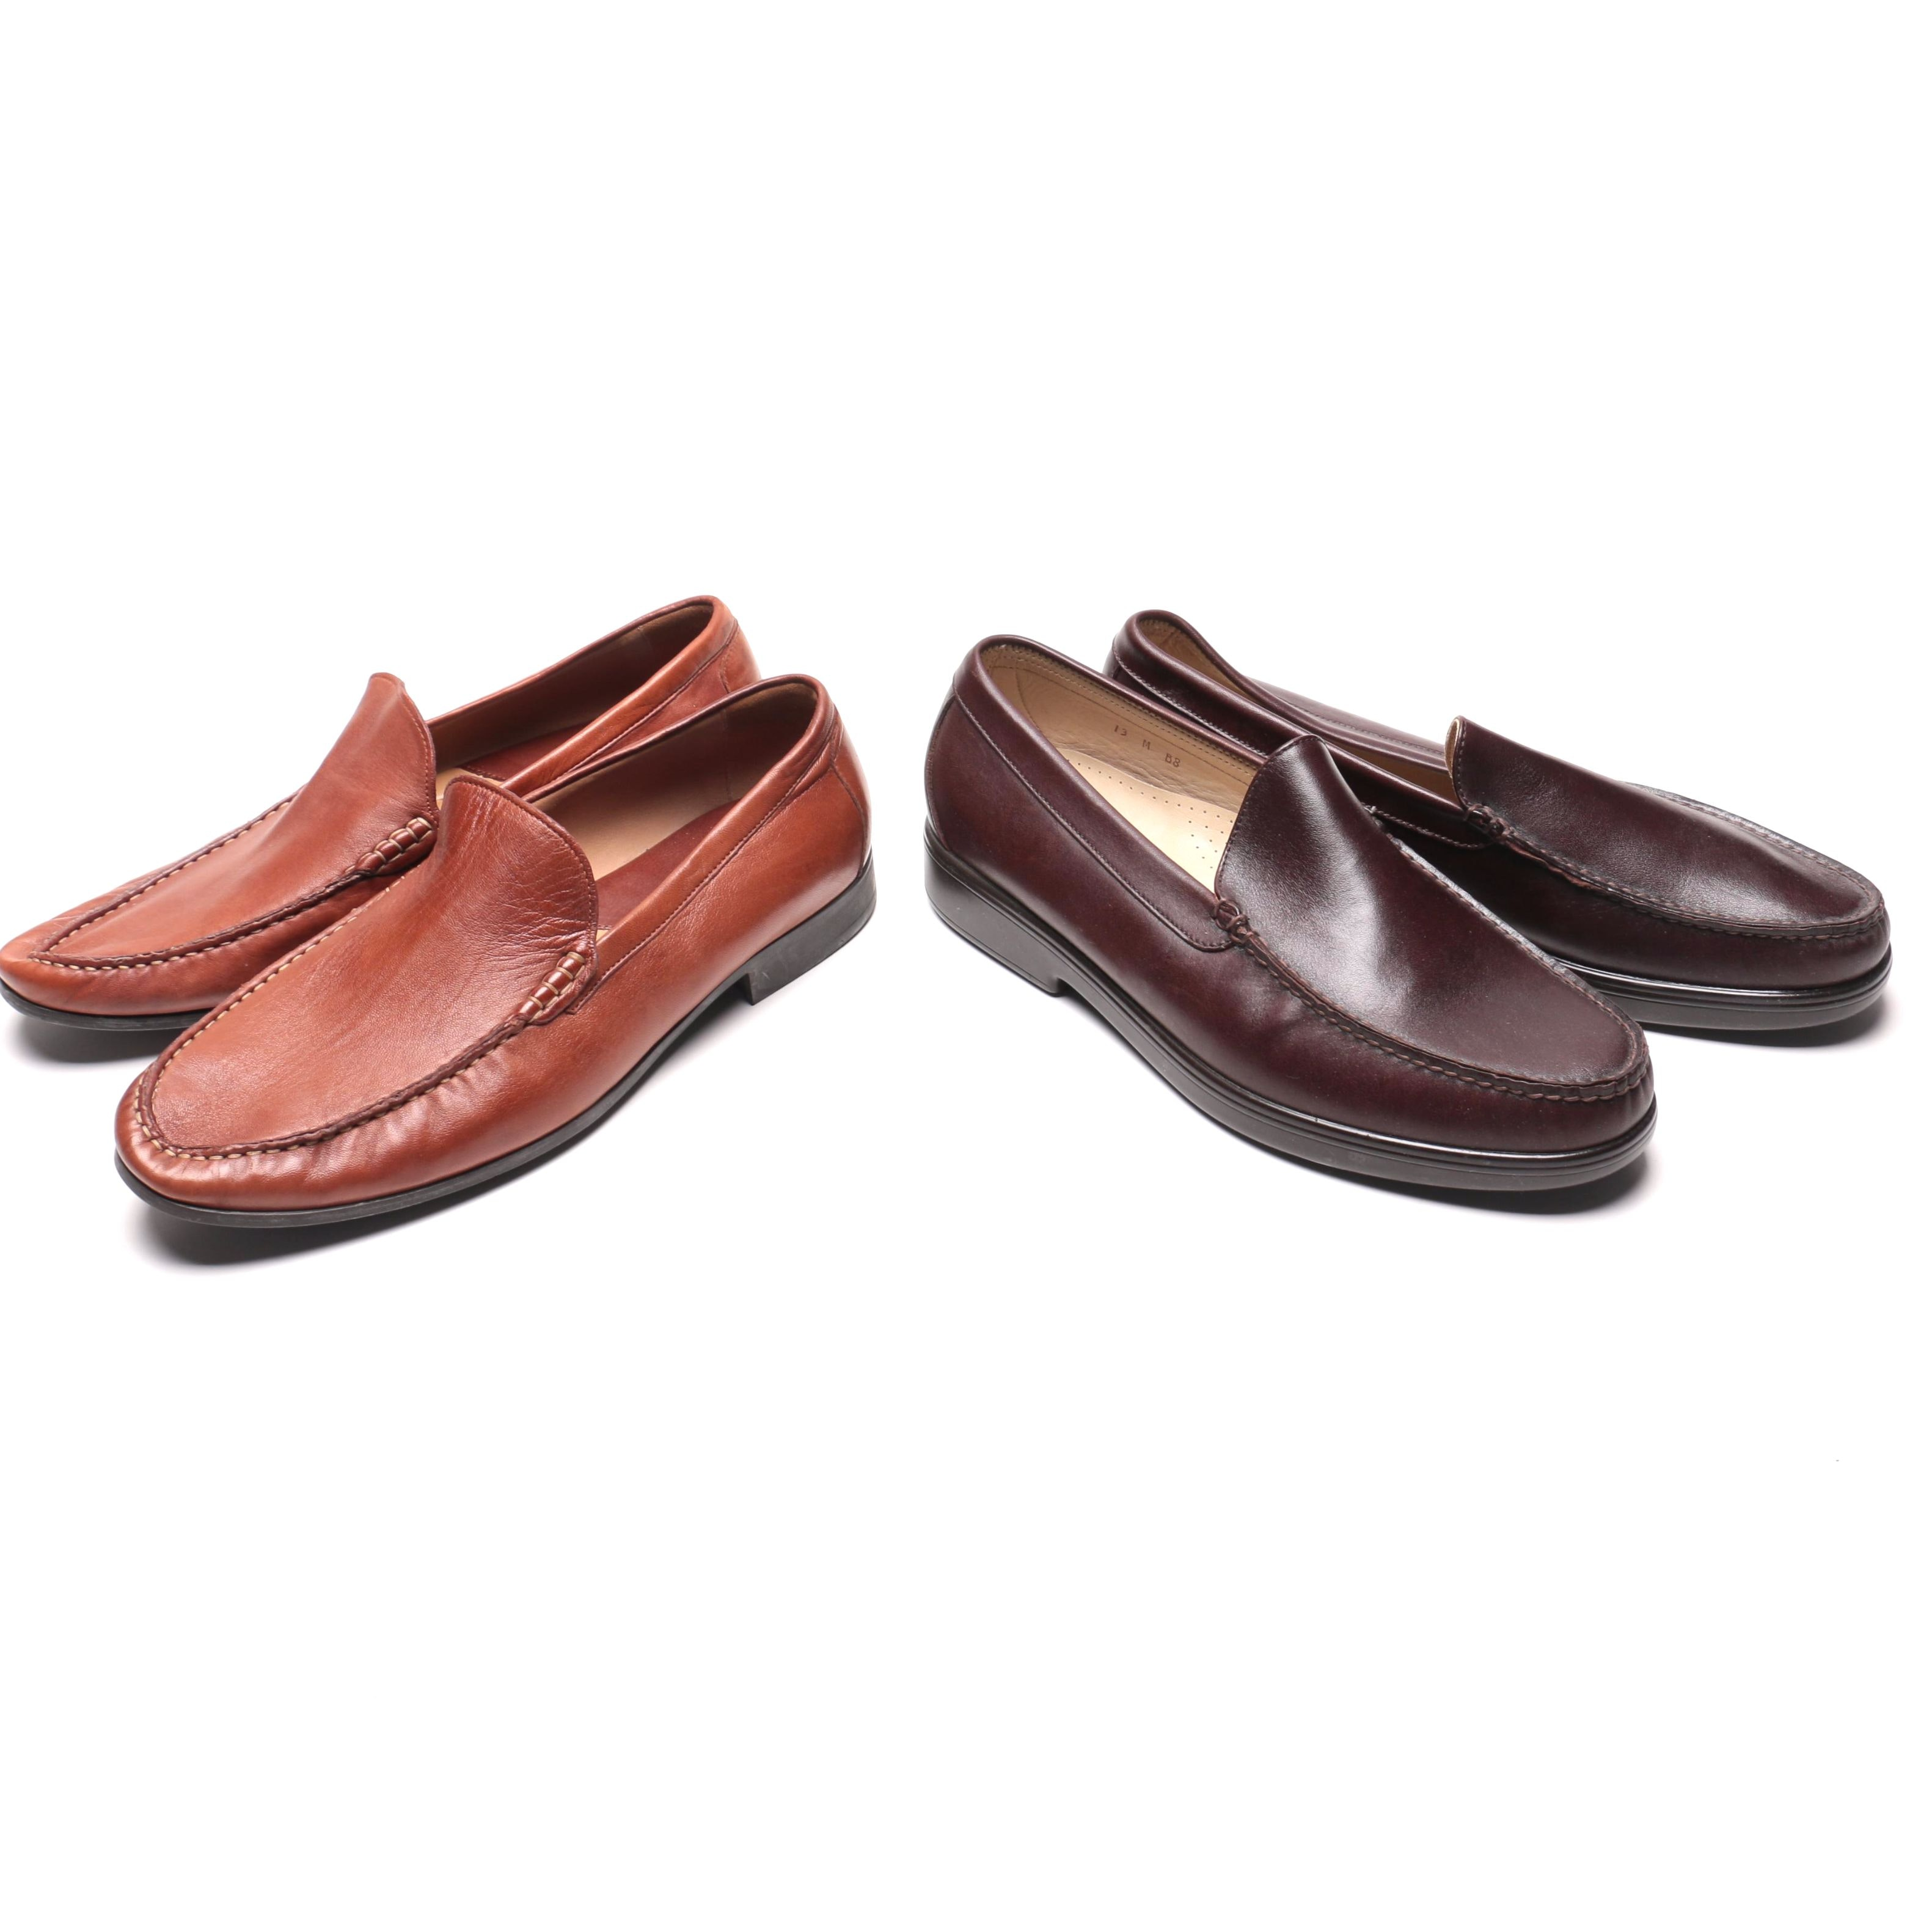 Men's Leather Loafers Including Johnson & Murphy